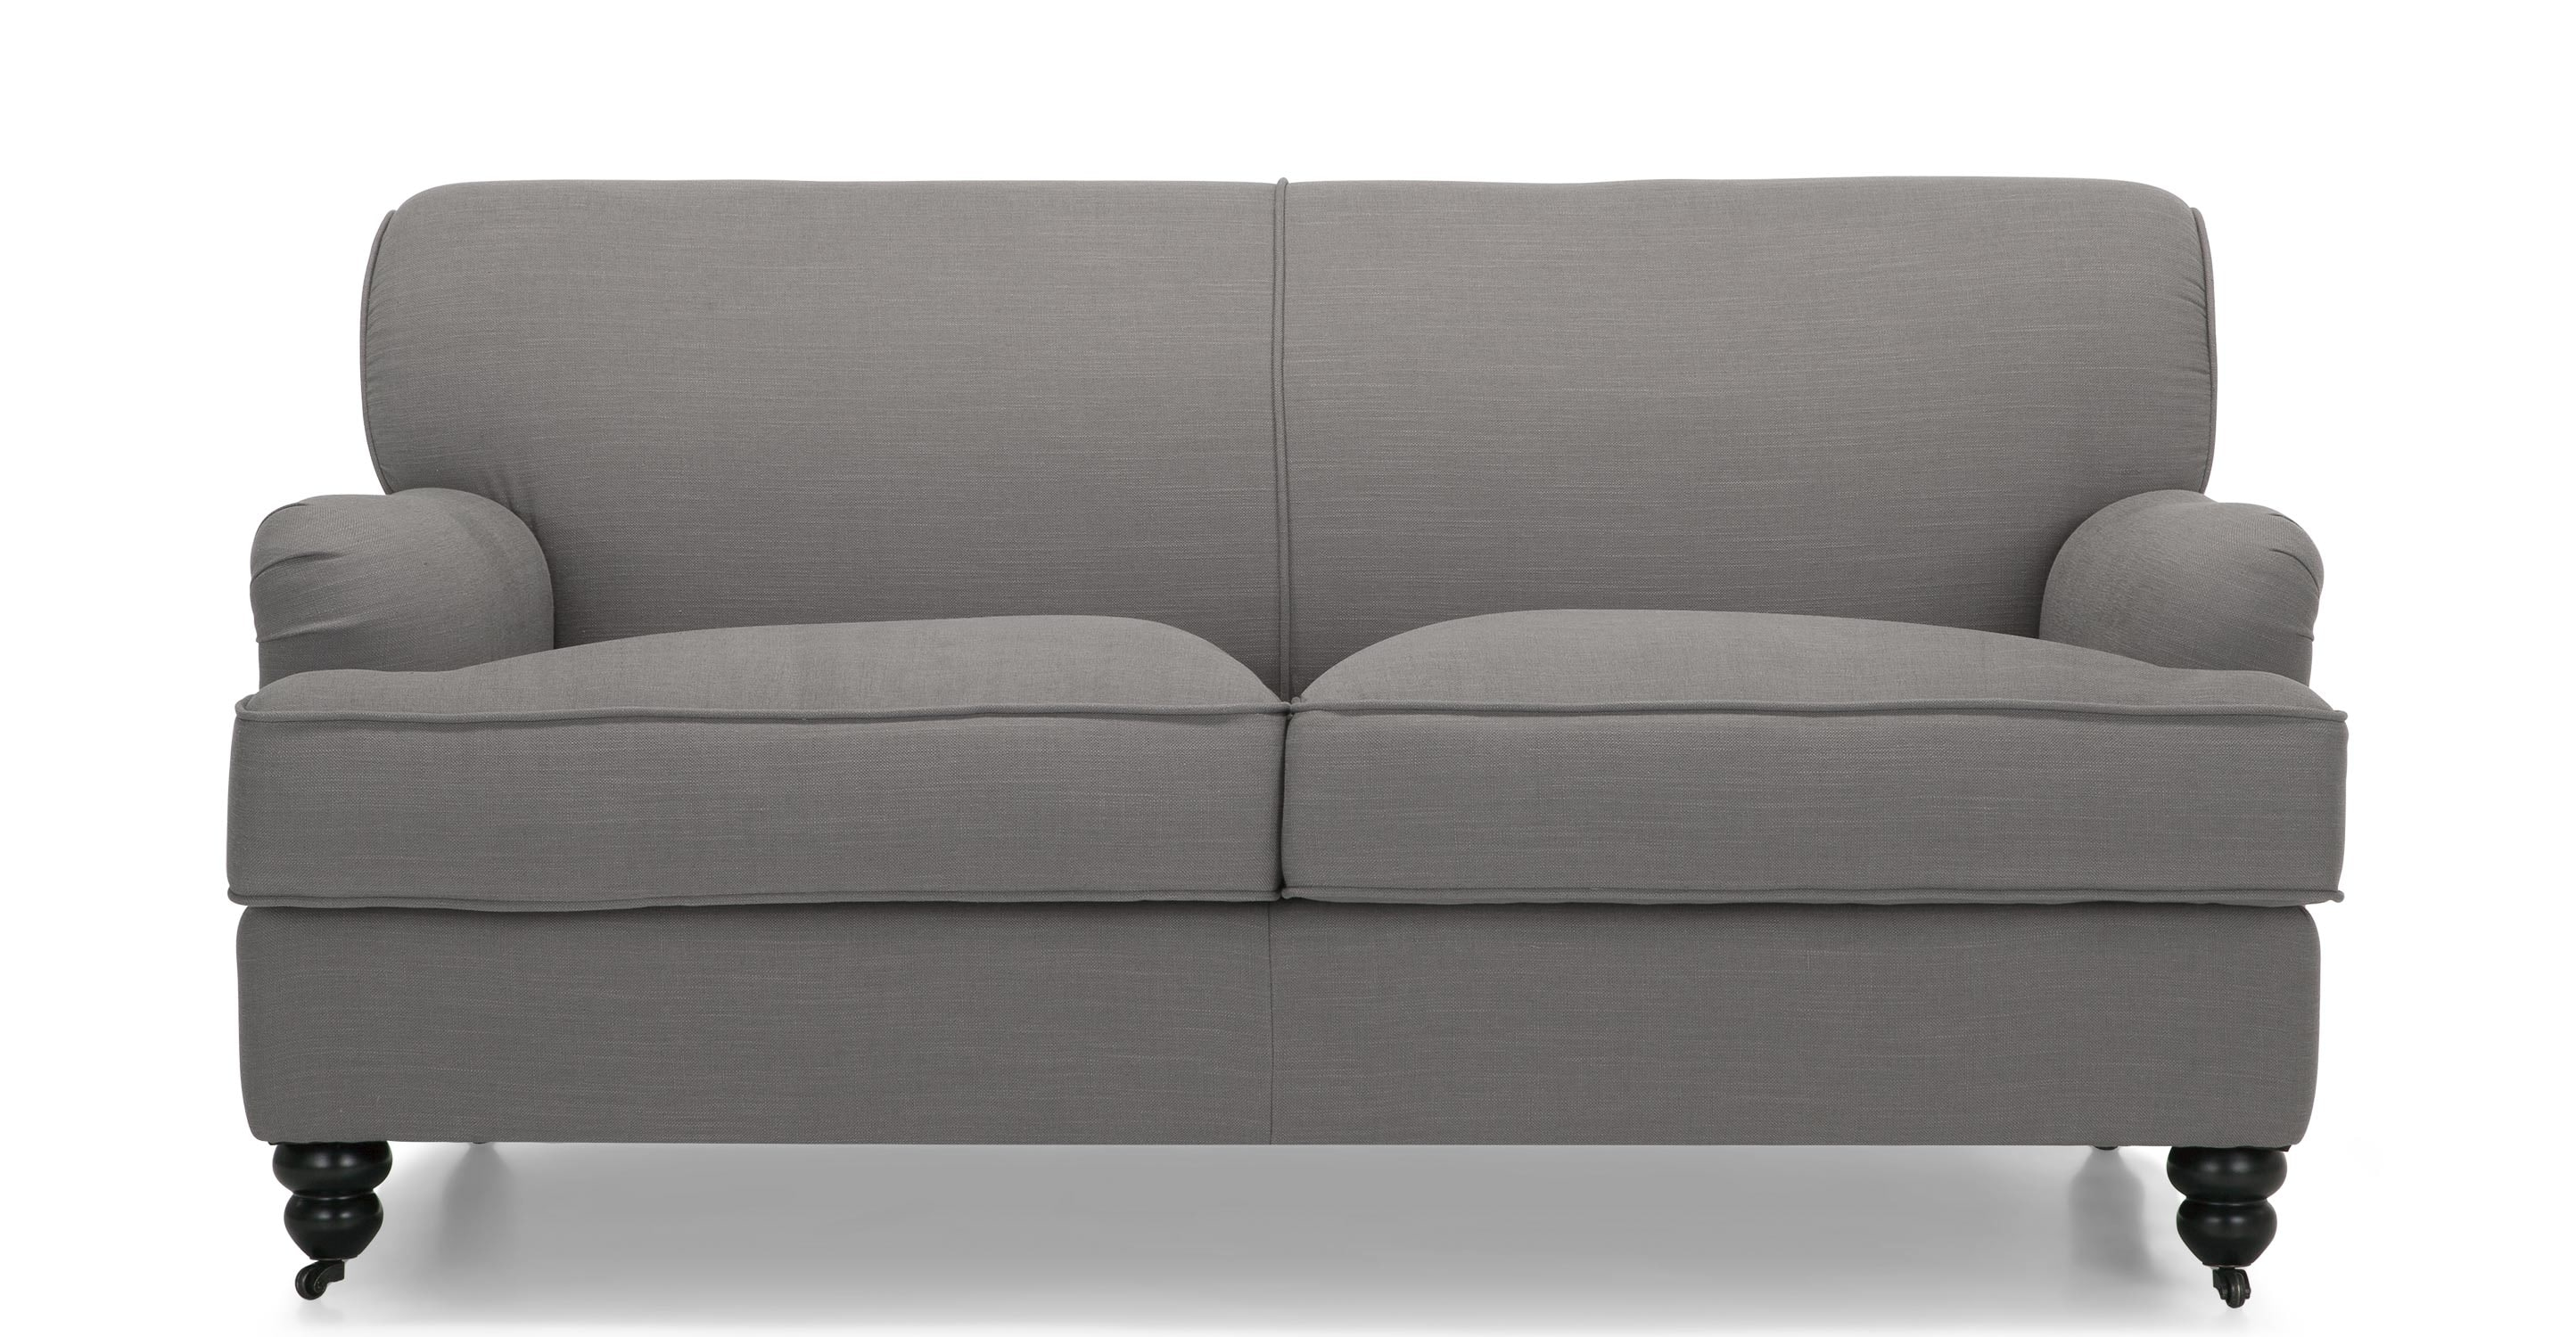 Orson 2 Seater Sofa Graphite Grey Made Intended For 2 Seater Sofas (Image 13 of 15)